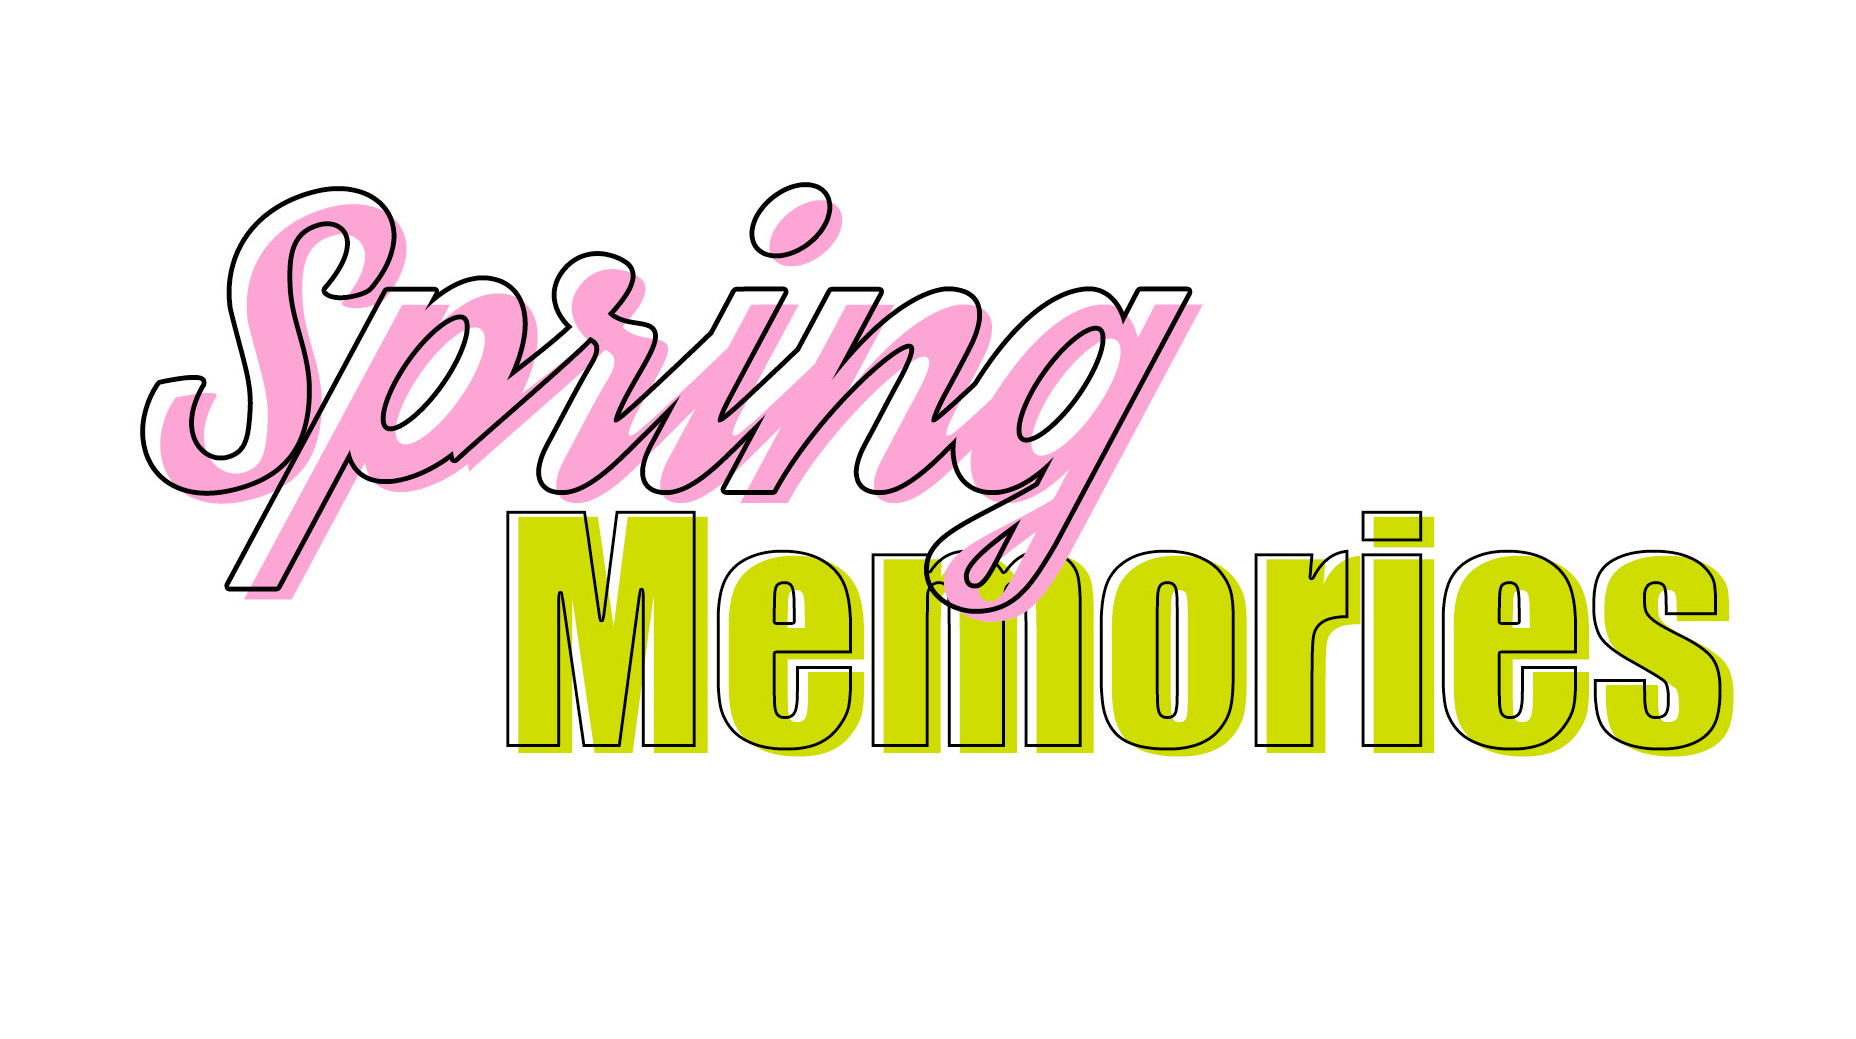 Offset text sample Spring